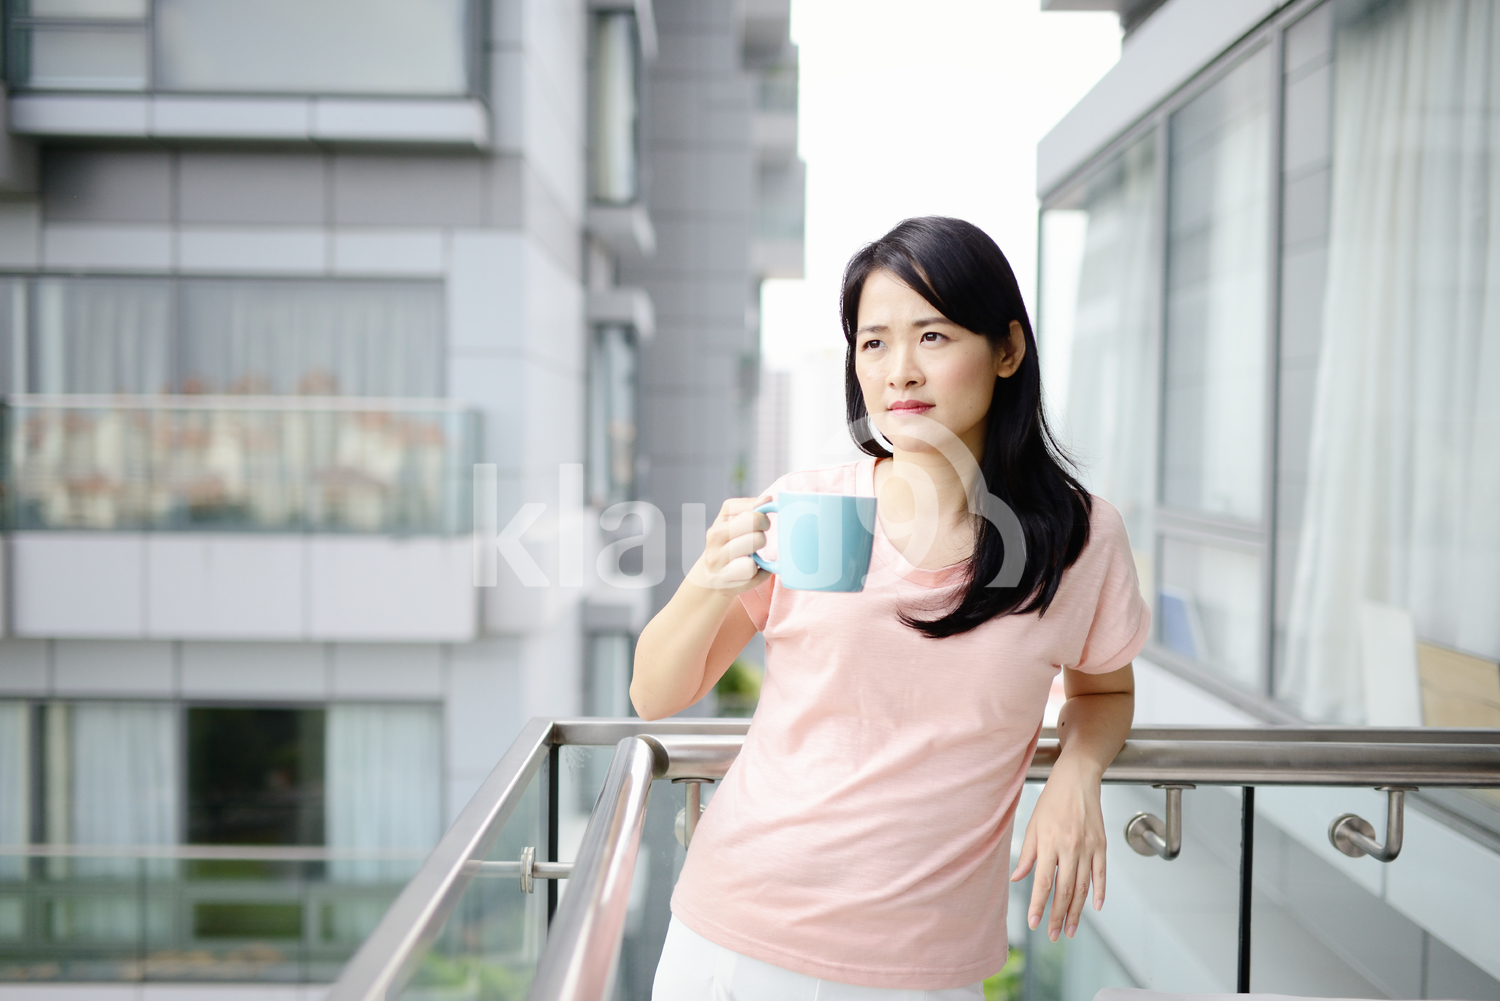 Confident young woman drinking coffee outside her new condo